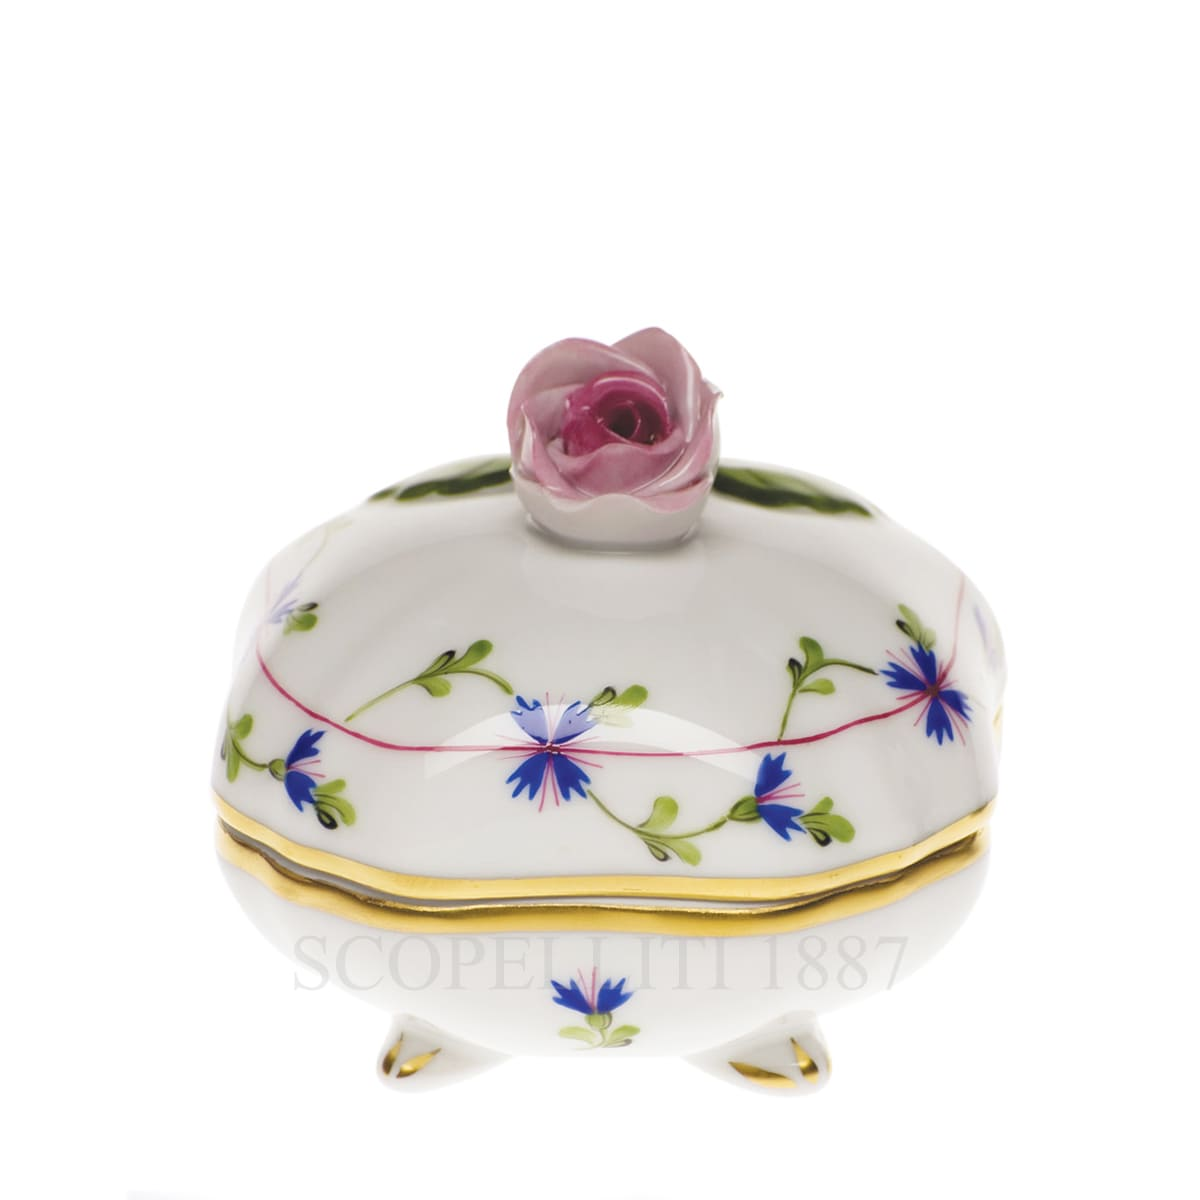 herend handpainted porcelain bonbonniere with rose